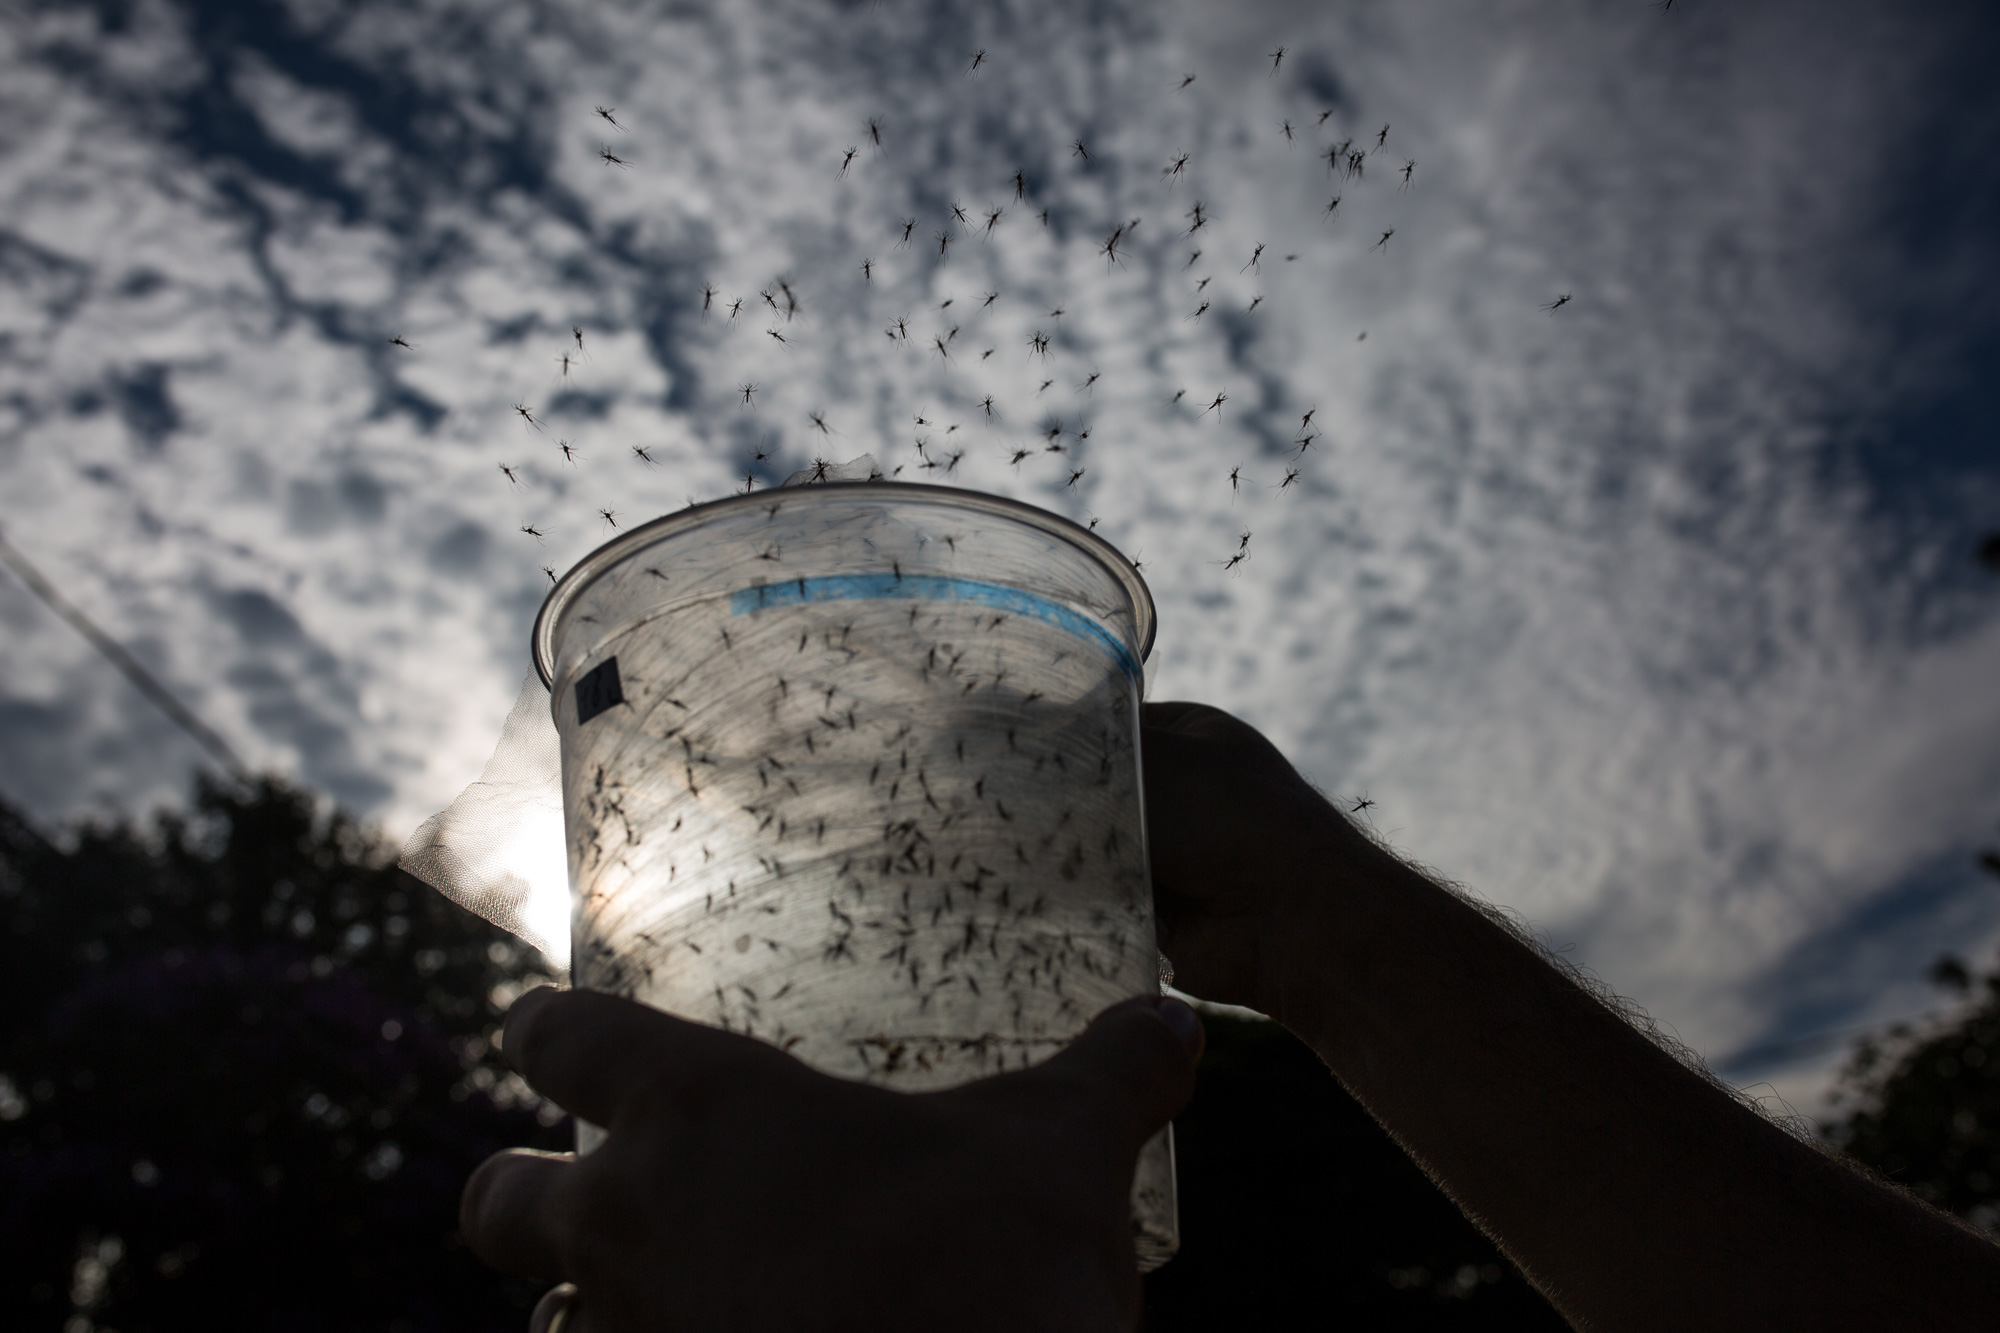 Genetically modified <i>Aedes aegypti</i> mosquitoes made by Oxitec were released in Piracicaba, Brazil, earlier this year.